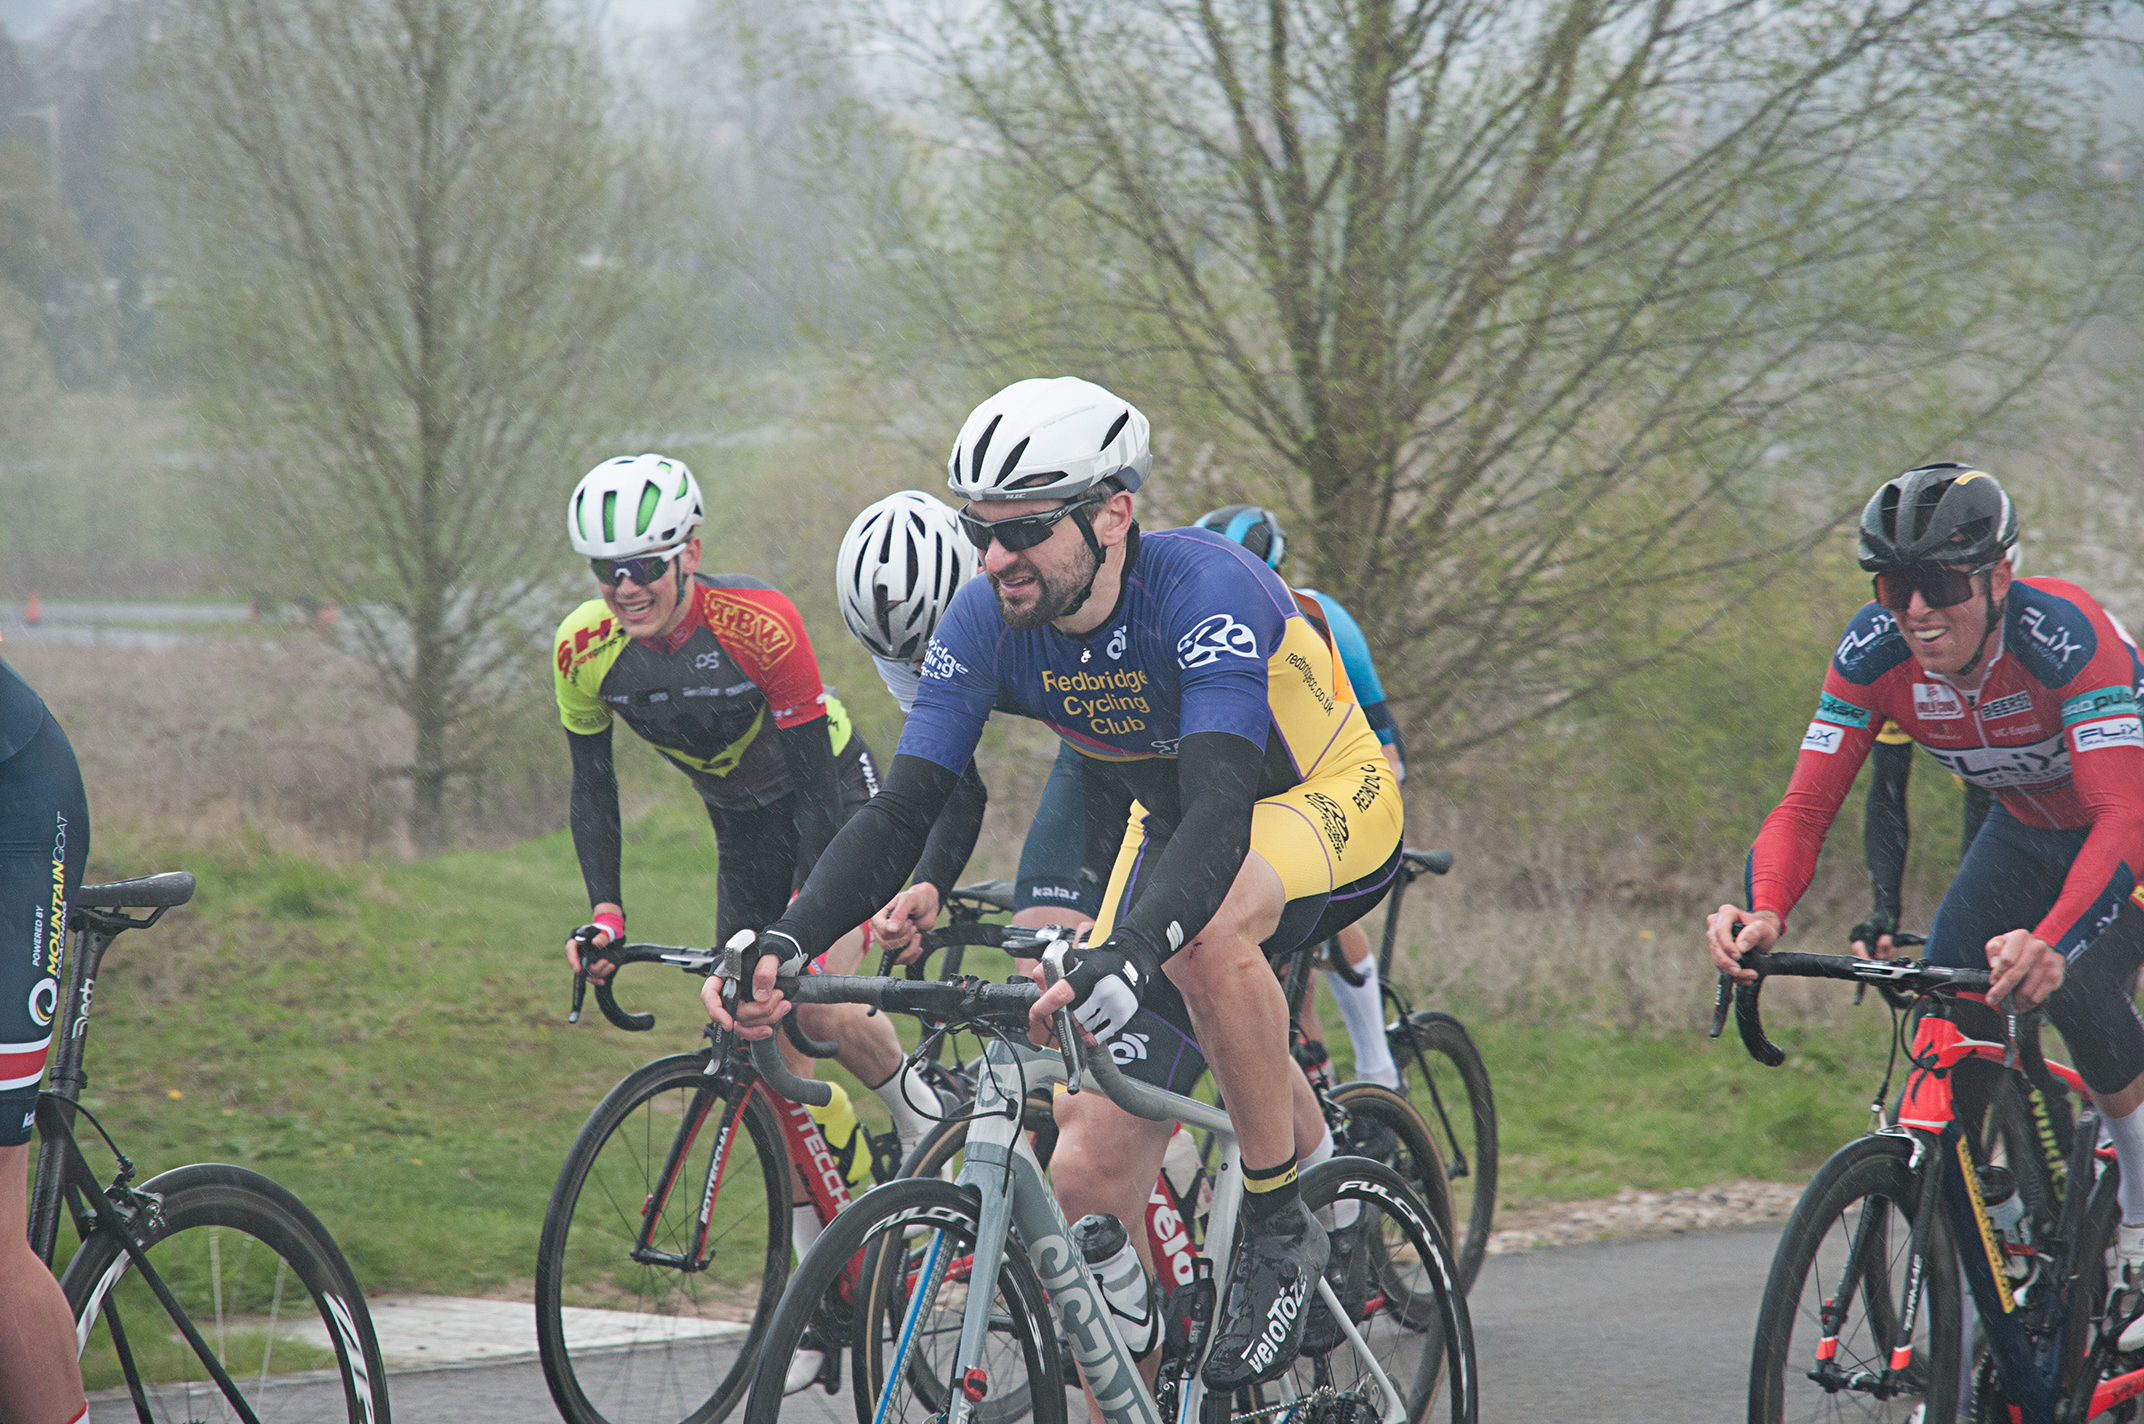 2019 Monument Spring crits 4 (11 of 25).JPG